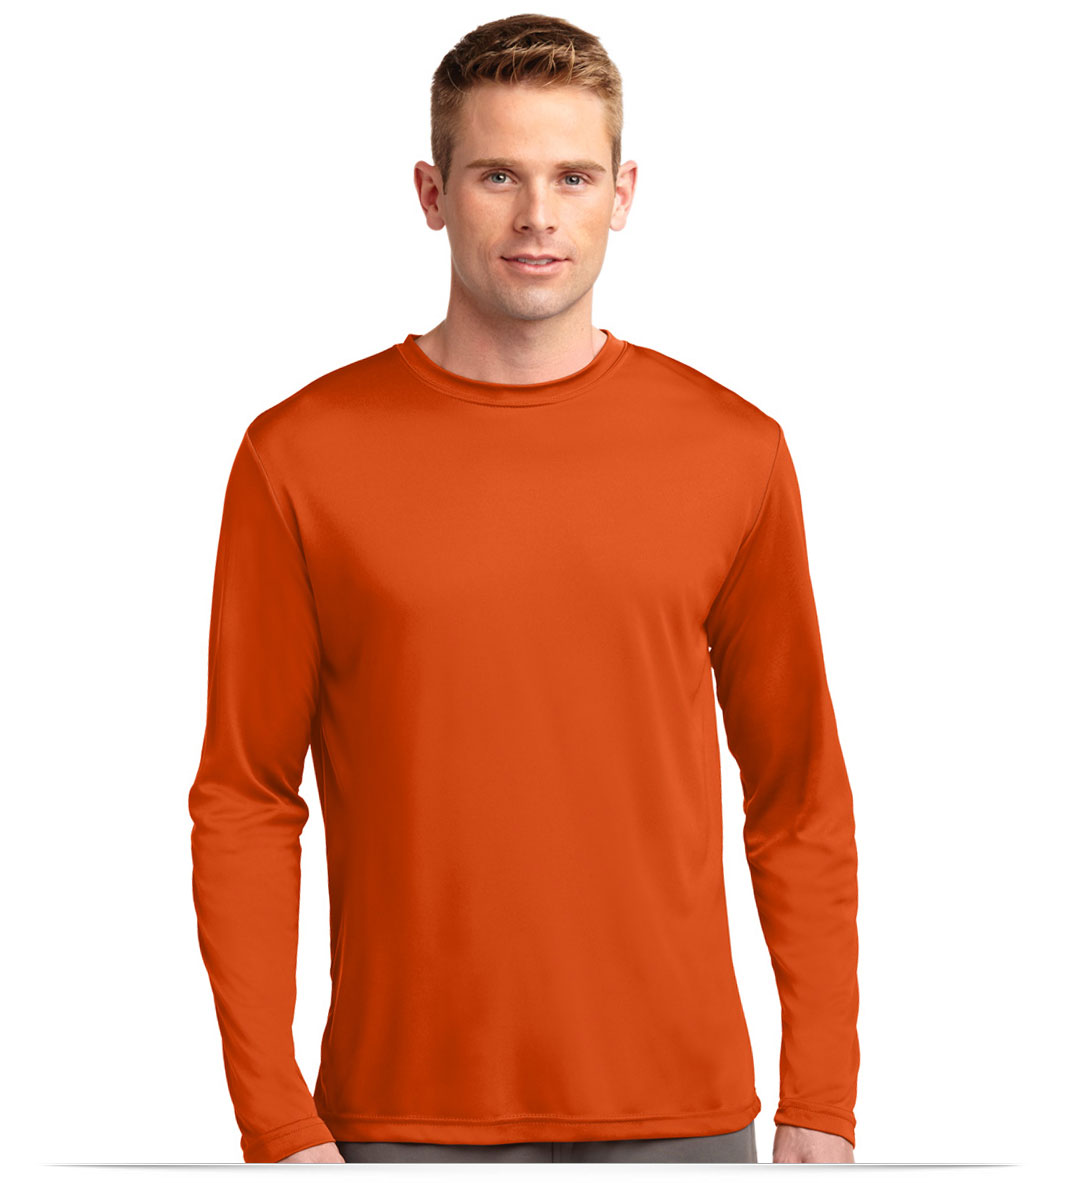 Personalized Sport-Tek Tall Long Sleeve Competitor Tee